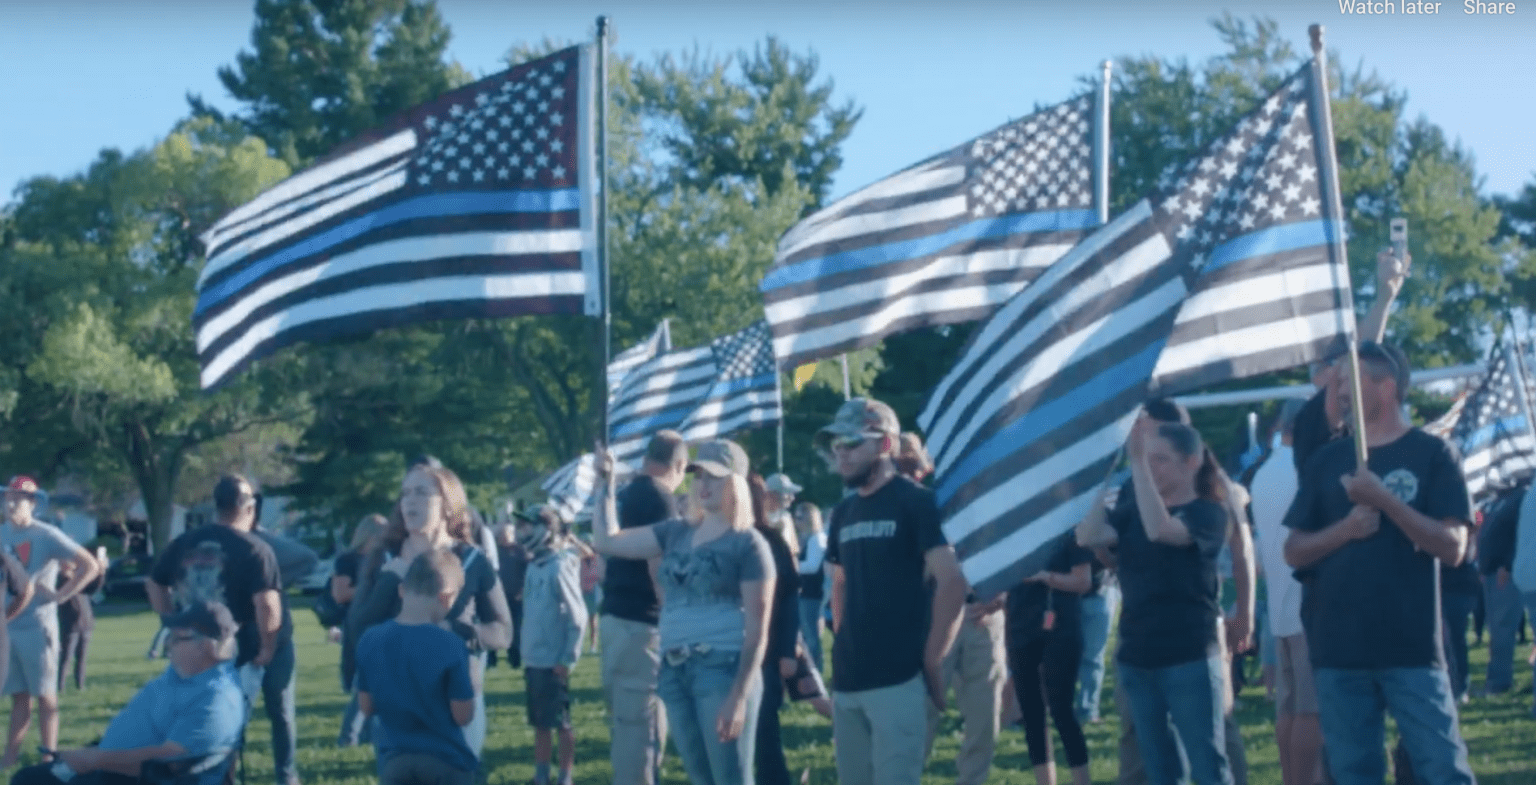 """County commissioner rips school superintendent for banning """"Thin Blue Line"""" flag from academic functions"""